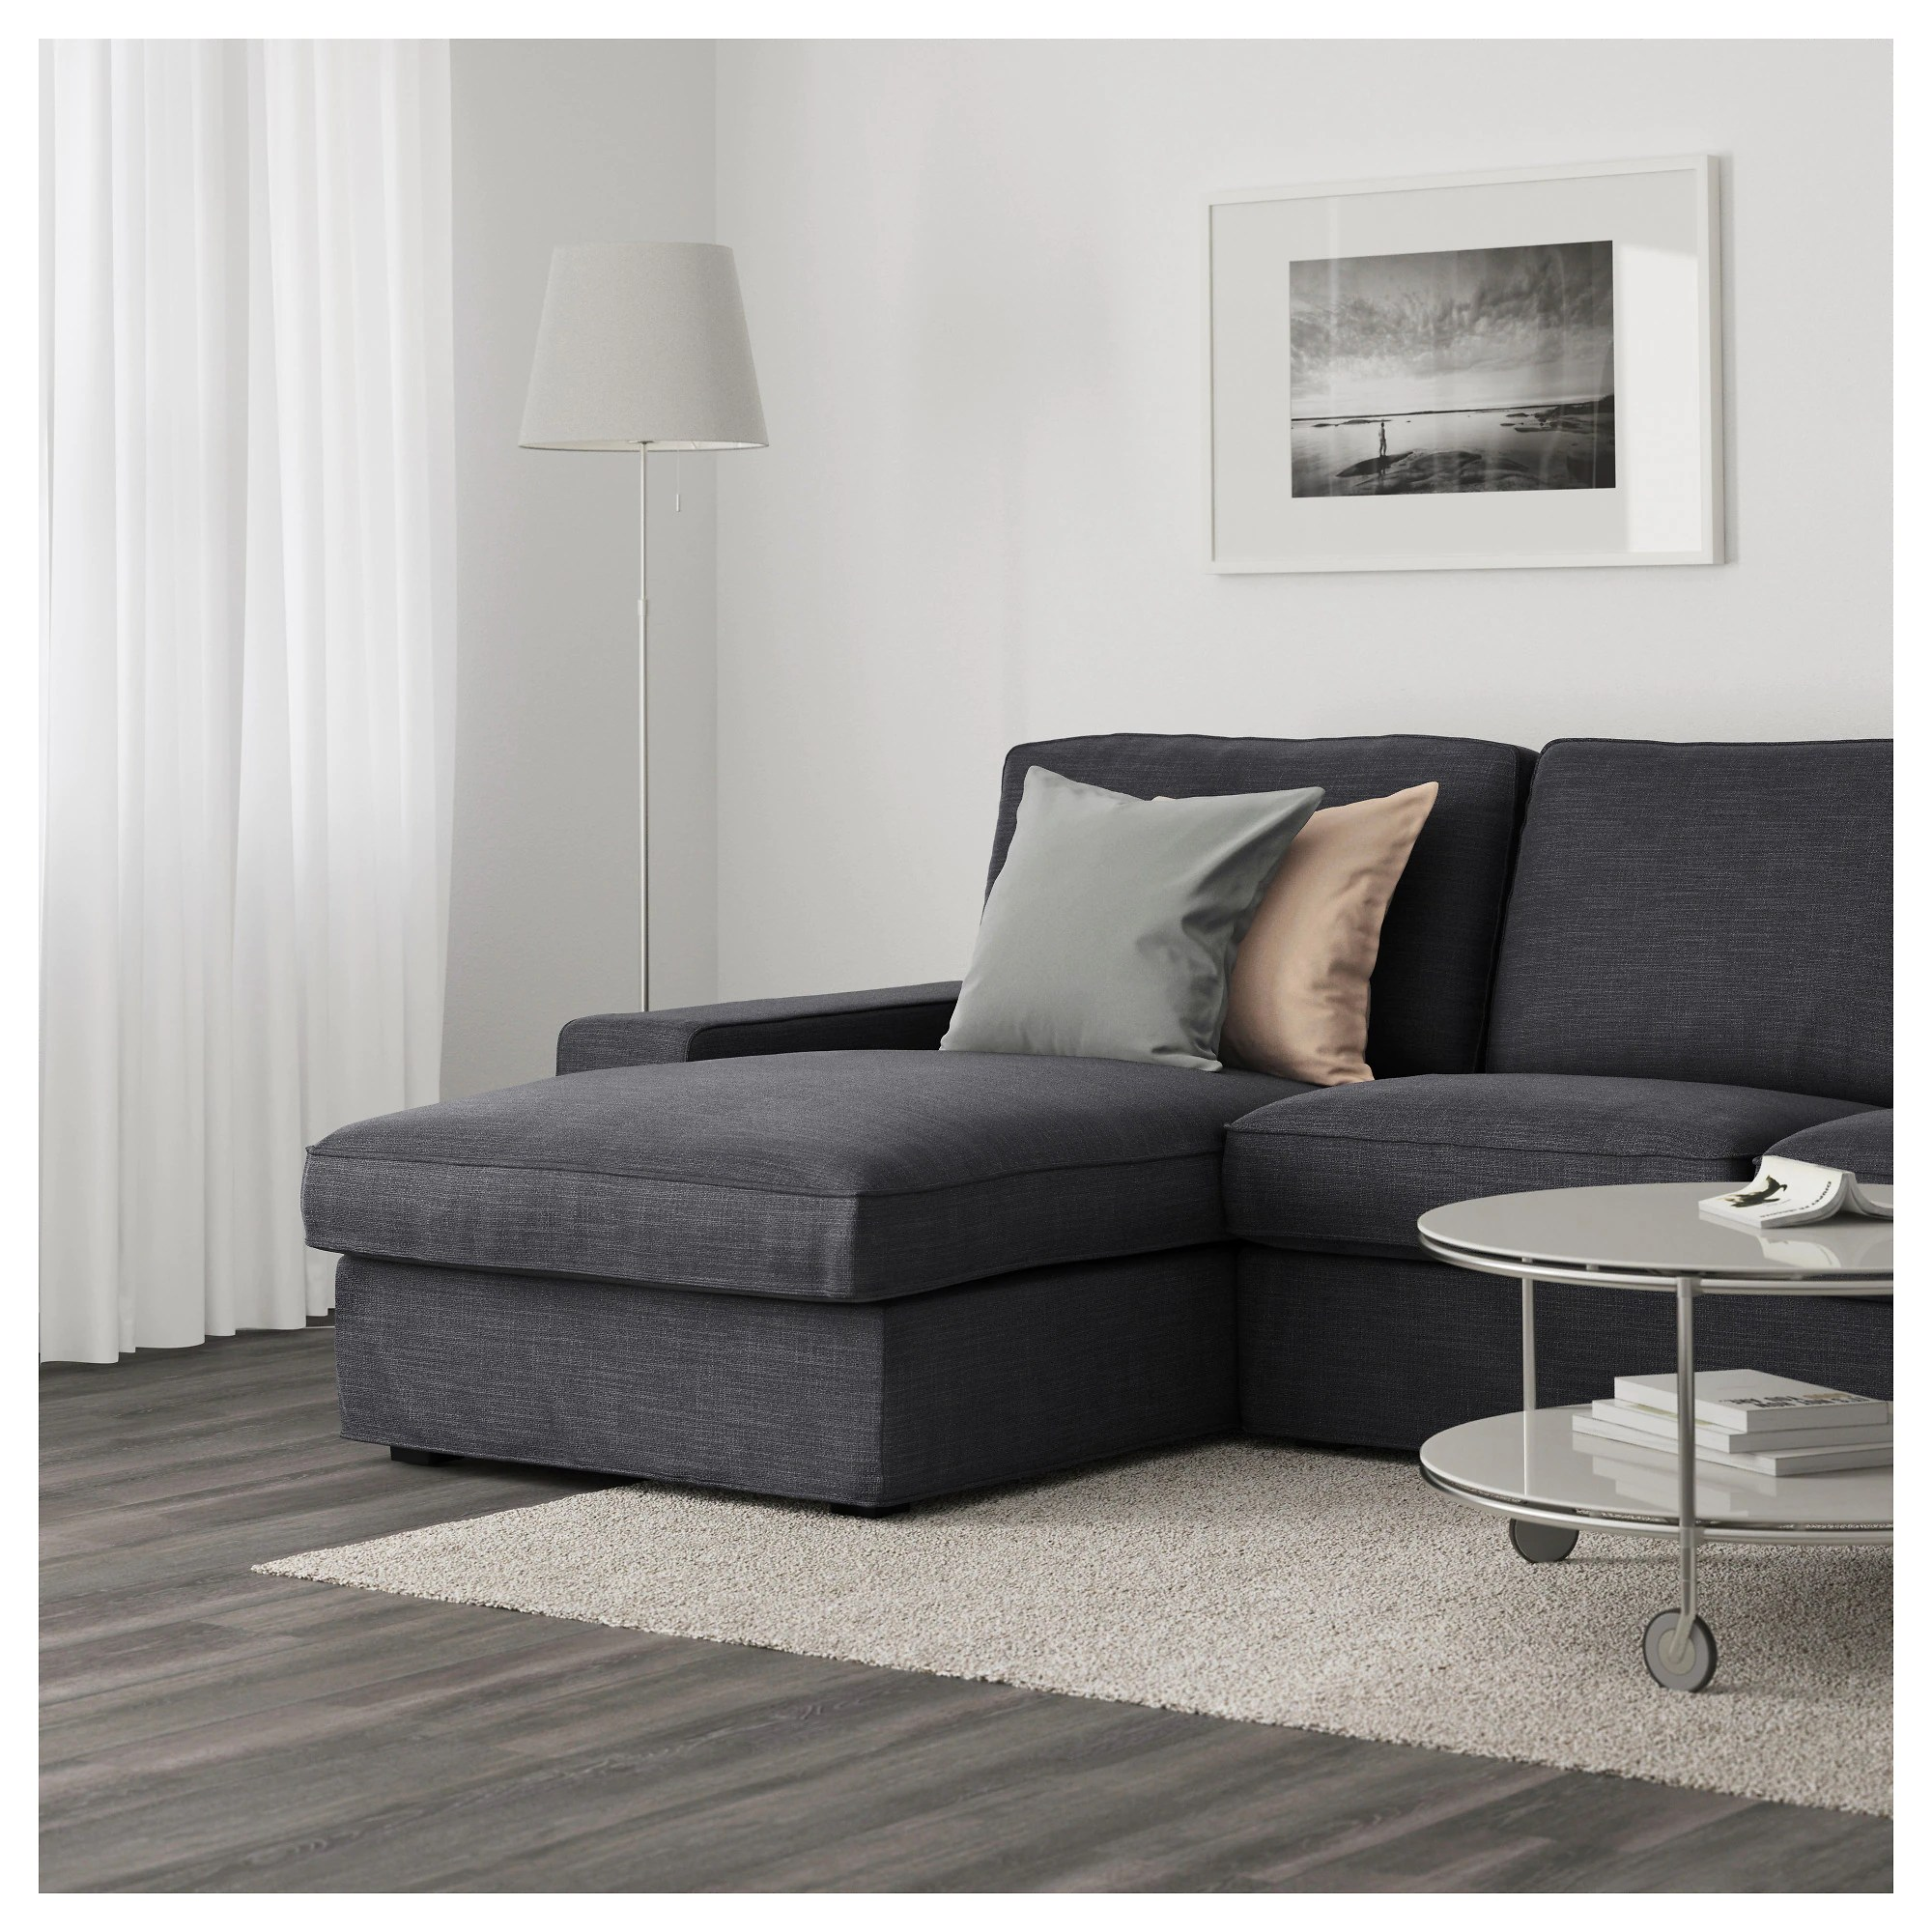 Kivik Sectional Kivik Sofa Hillared With Chaise Hillared Dark Blue